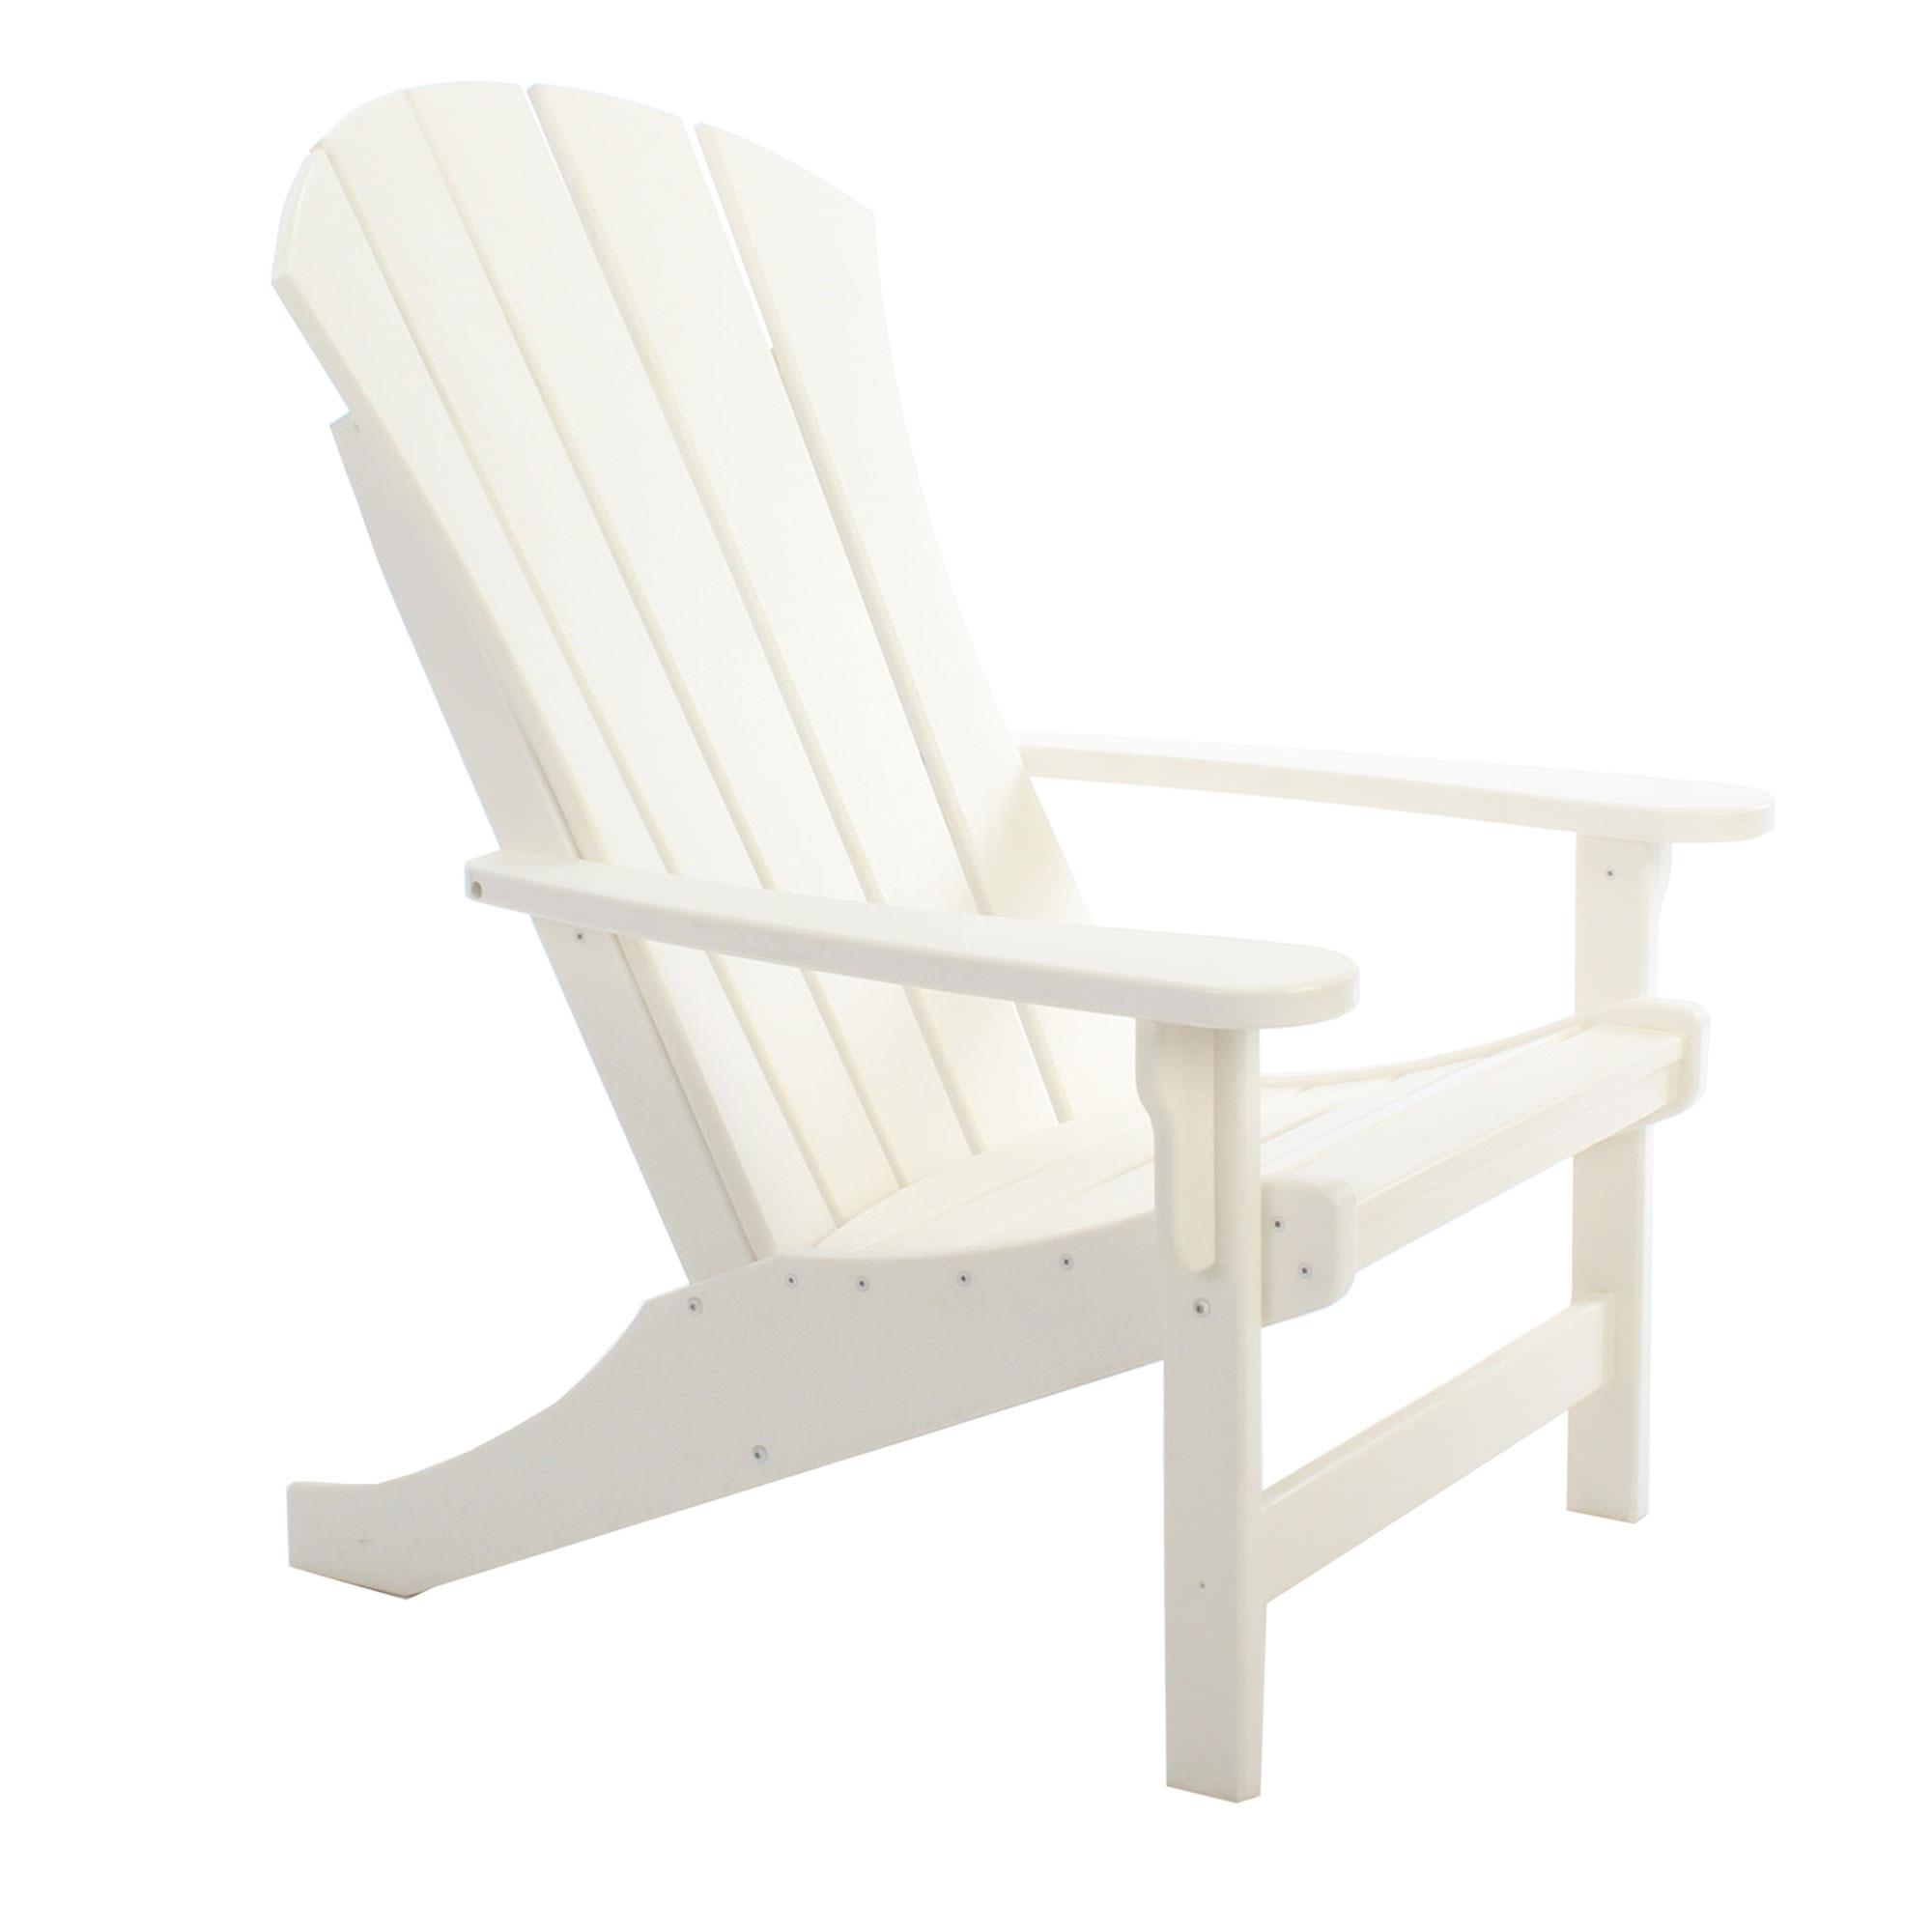 Merveilleux ... Sunrise White Durawood Adirondack Chair ...